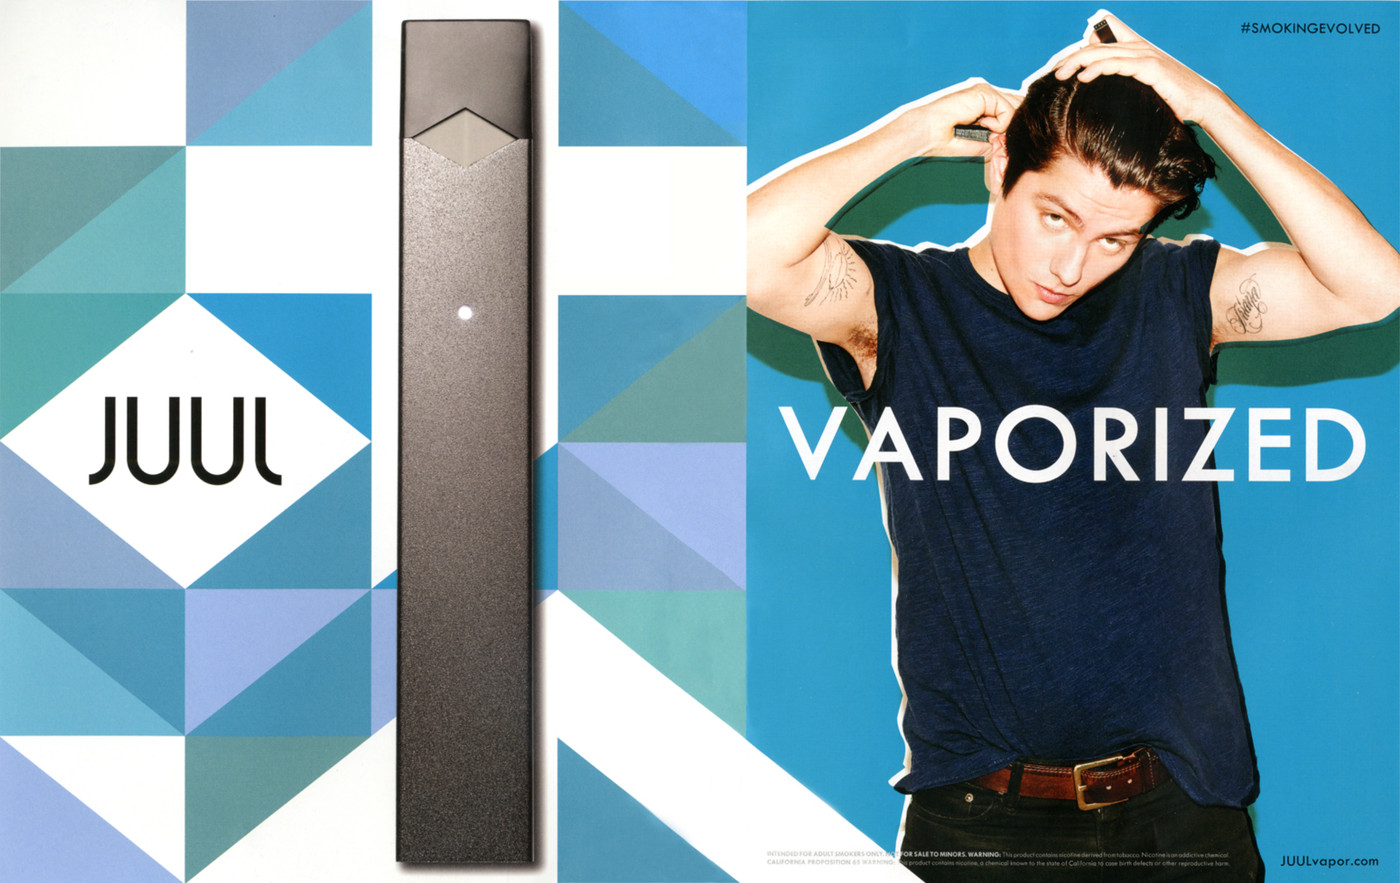 Juul ad study finds company targeted youth from beginning - Vox